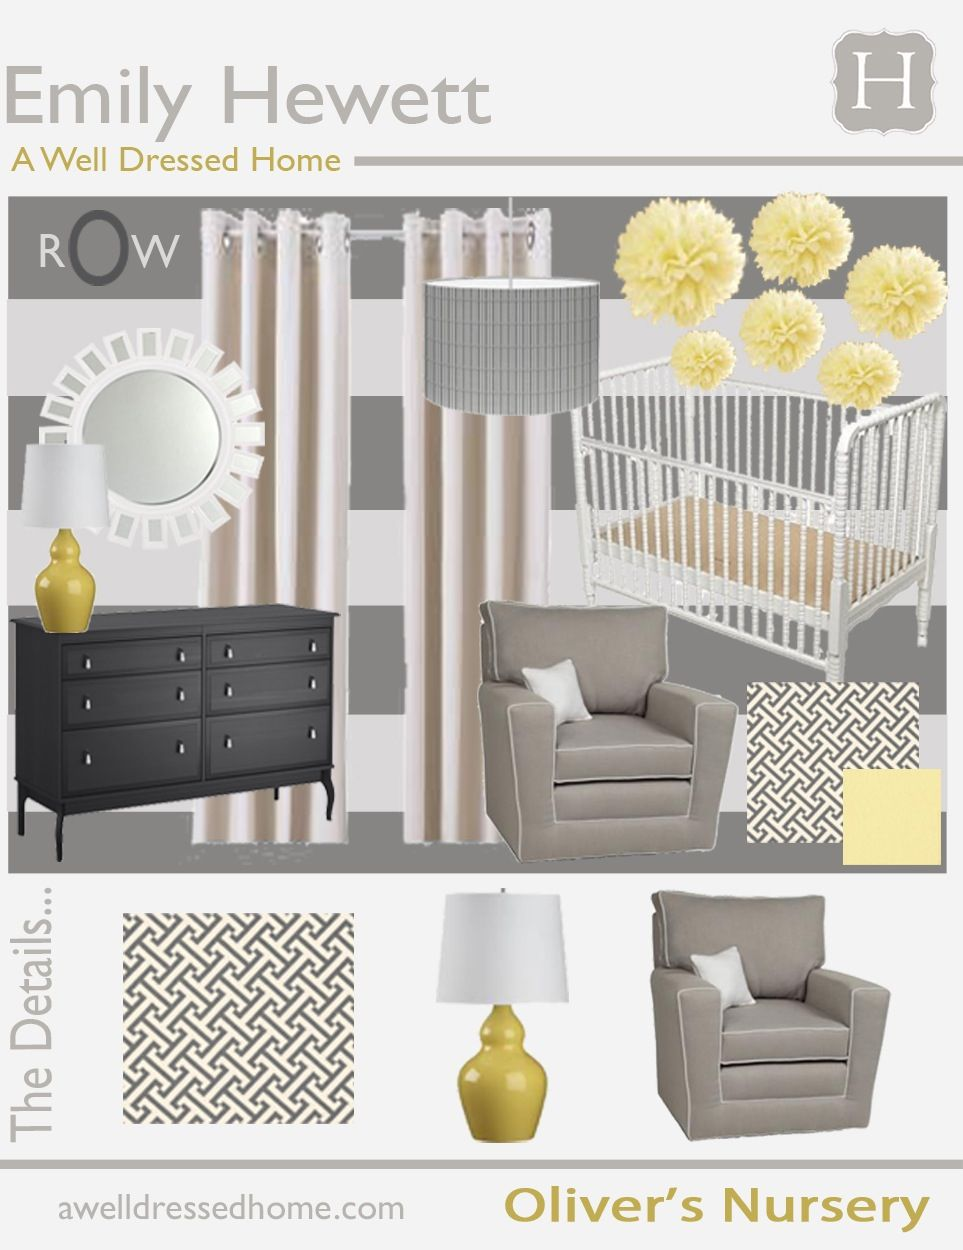 Baby nursery yellow grey gender neutral Ideas Grey White Yellow Nursery Gender Neutral Pinterest Grey White Yellow Nursery Gender Neutral Babys Room Pinterest